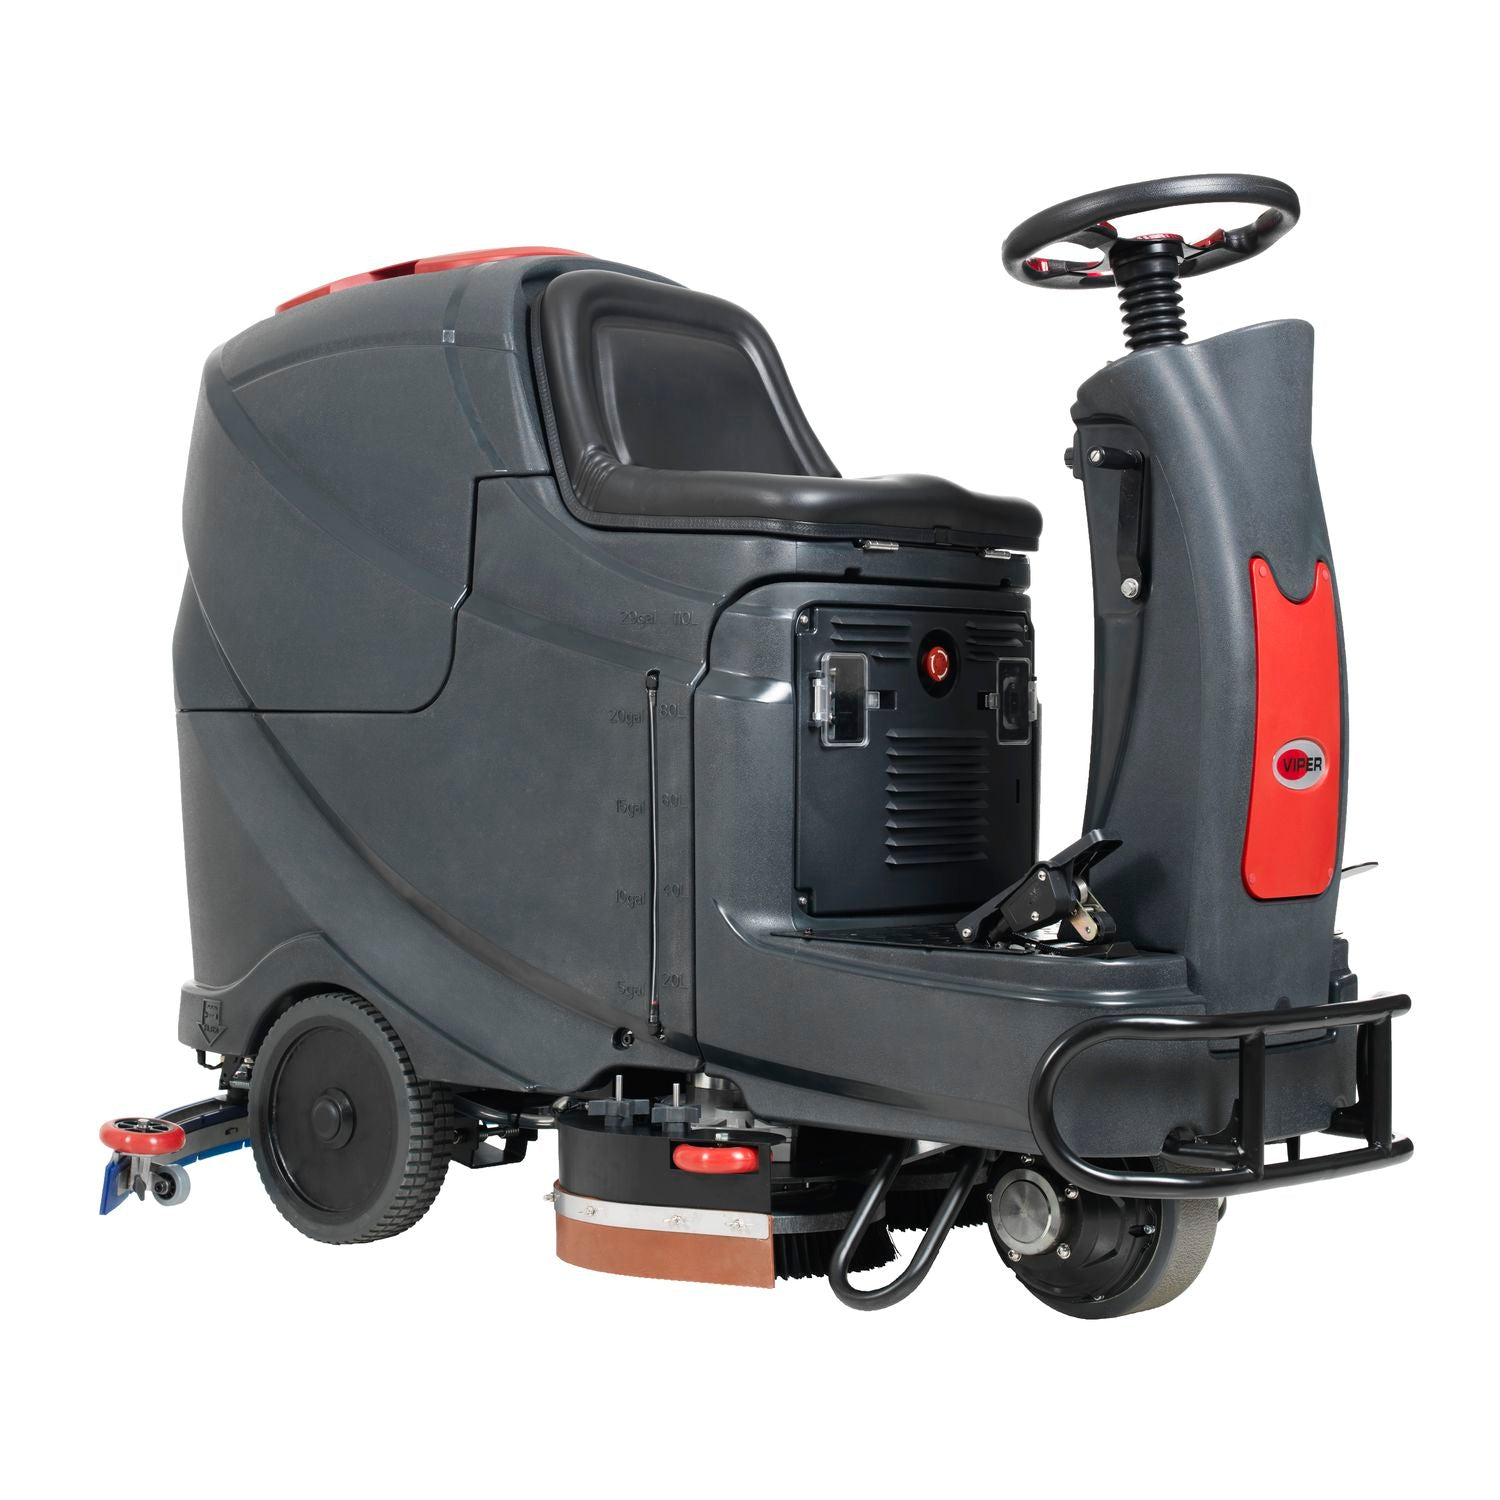 Viper As710 R Ride On Scrubber Dryer 24v